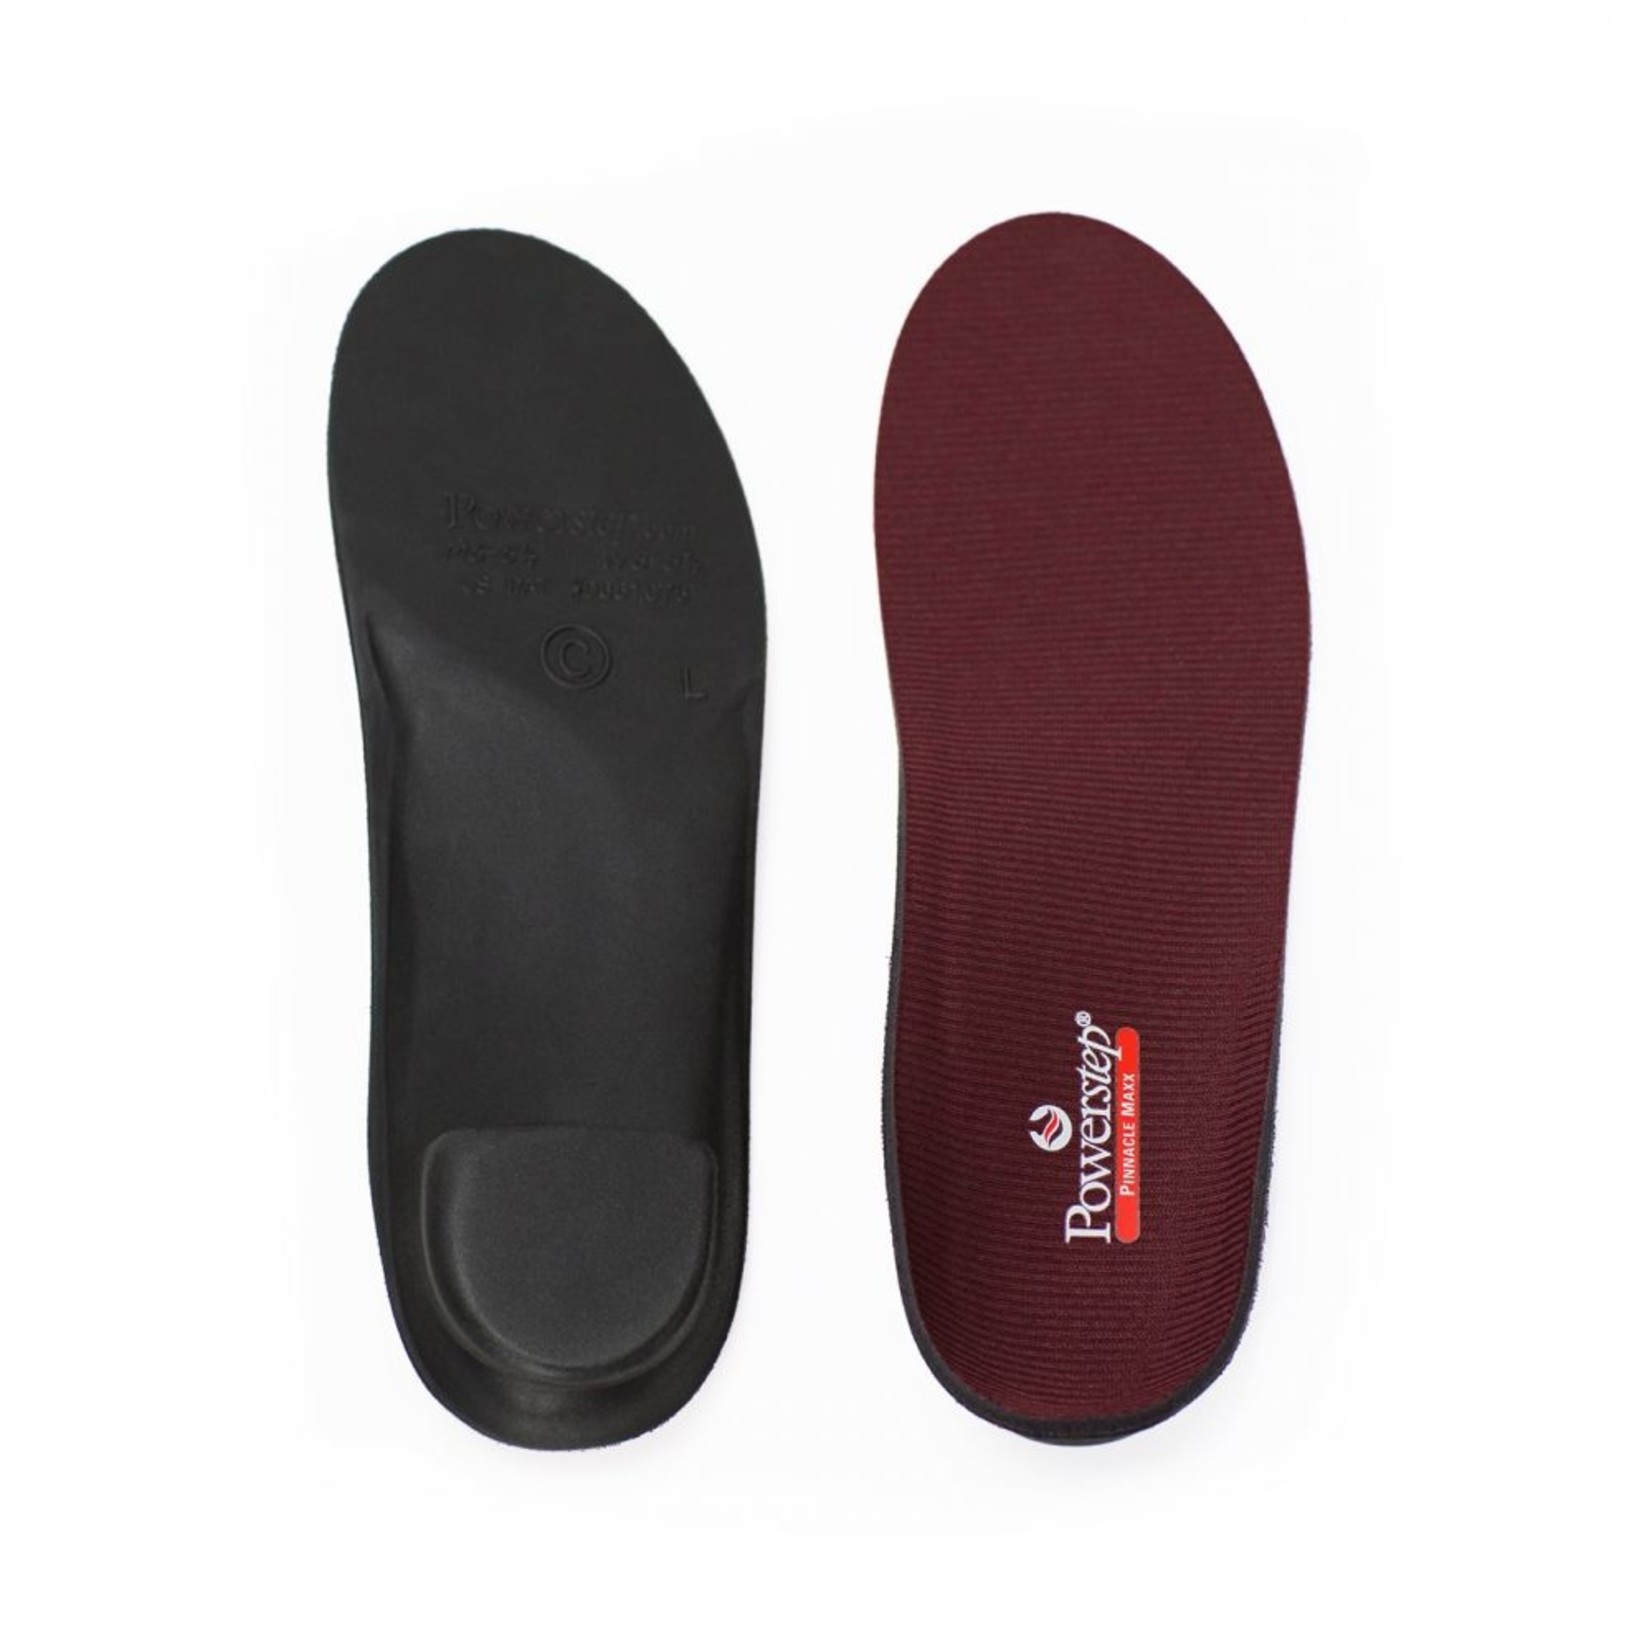 POWERSTEP POWERSTEP PINNACLE MAXX INSOLE